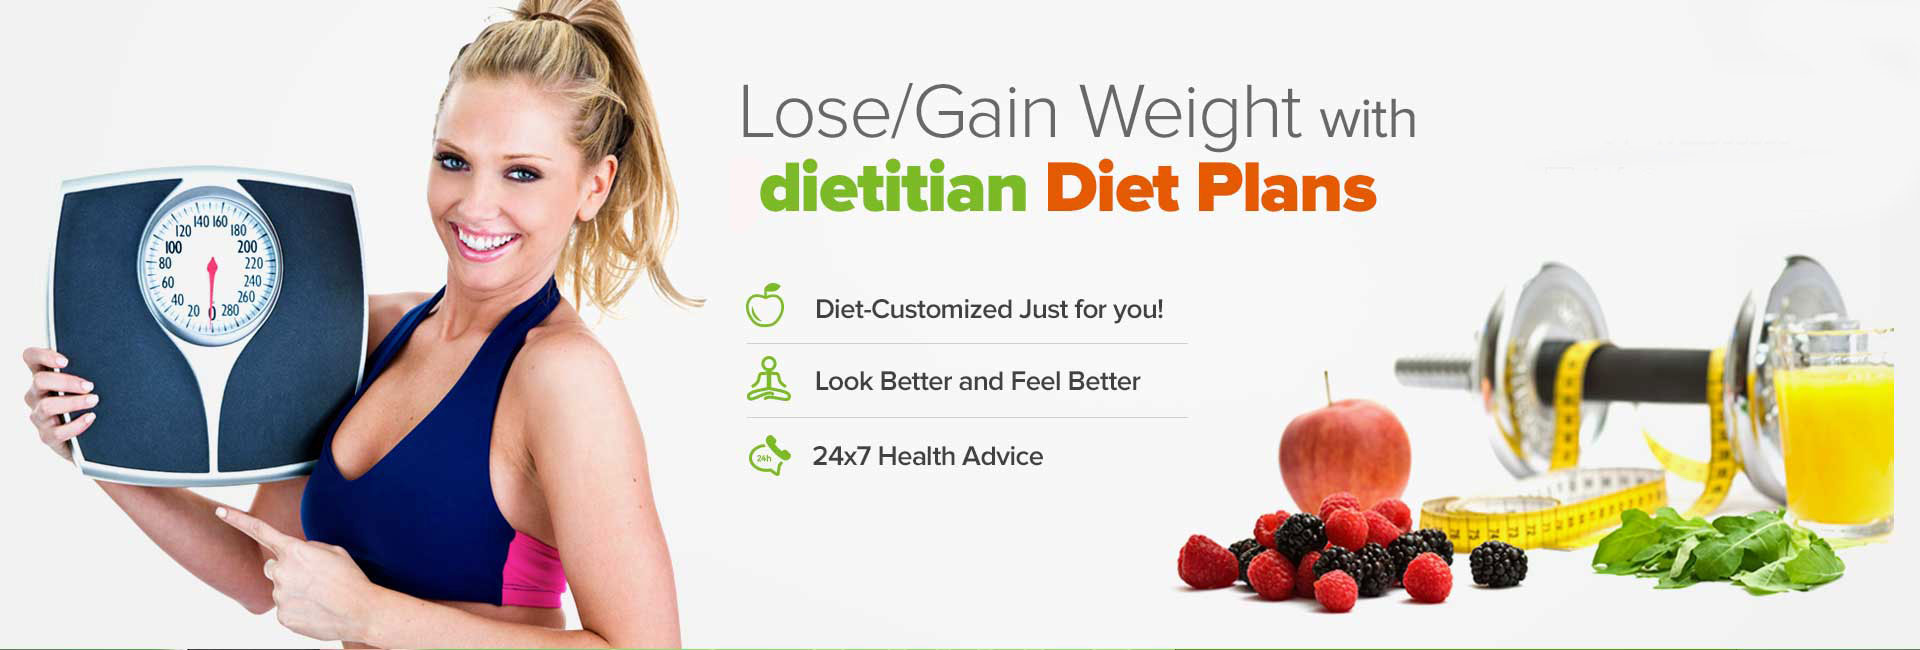 Diet Plan For Weight Loss In Baie-comeau